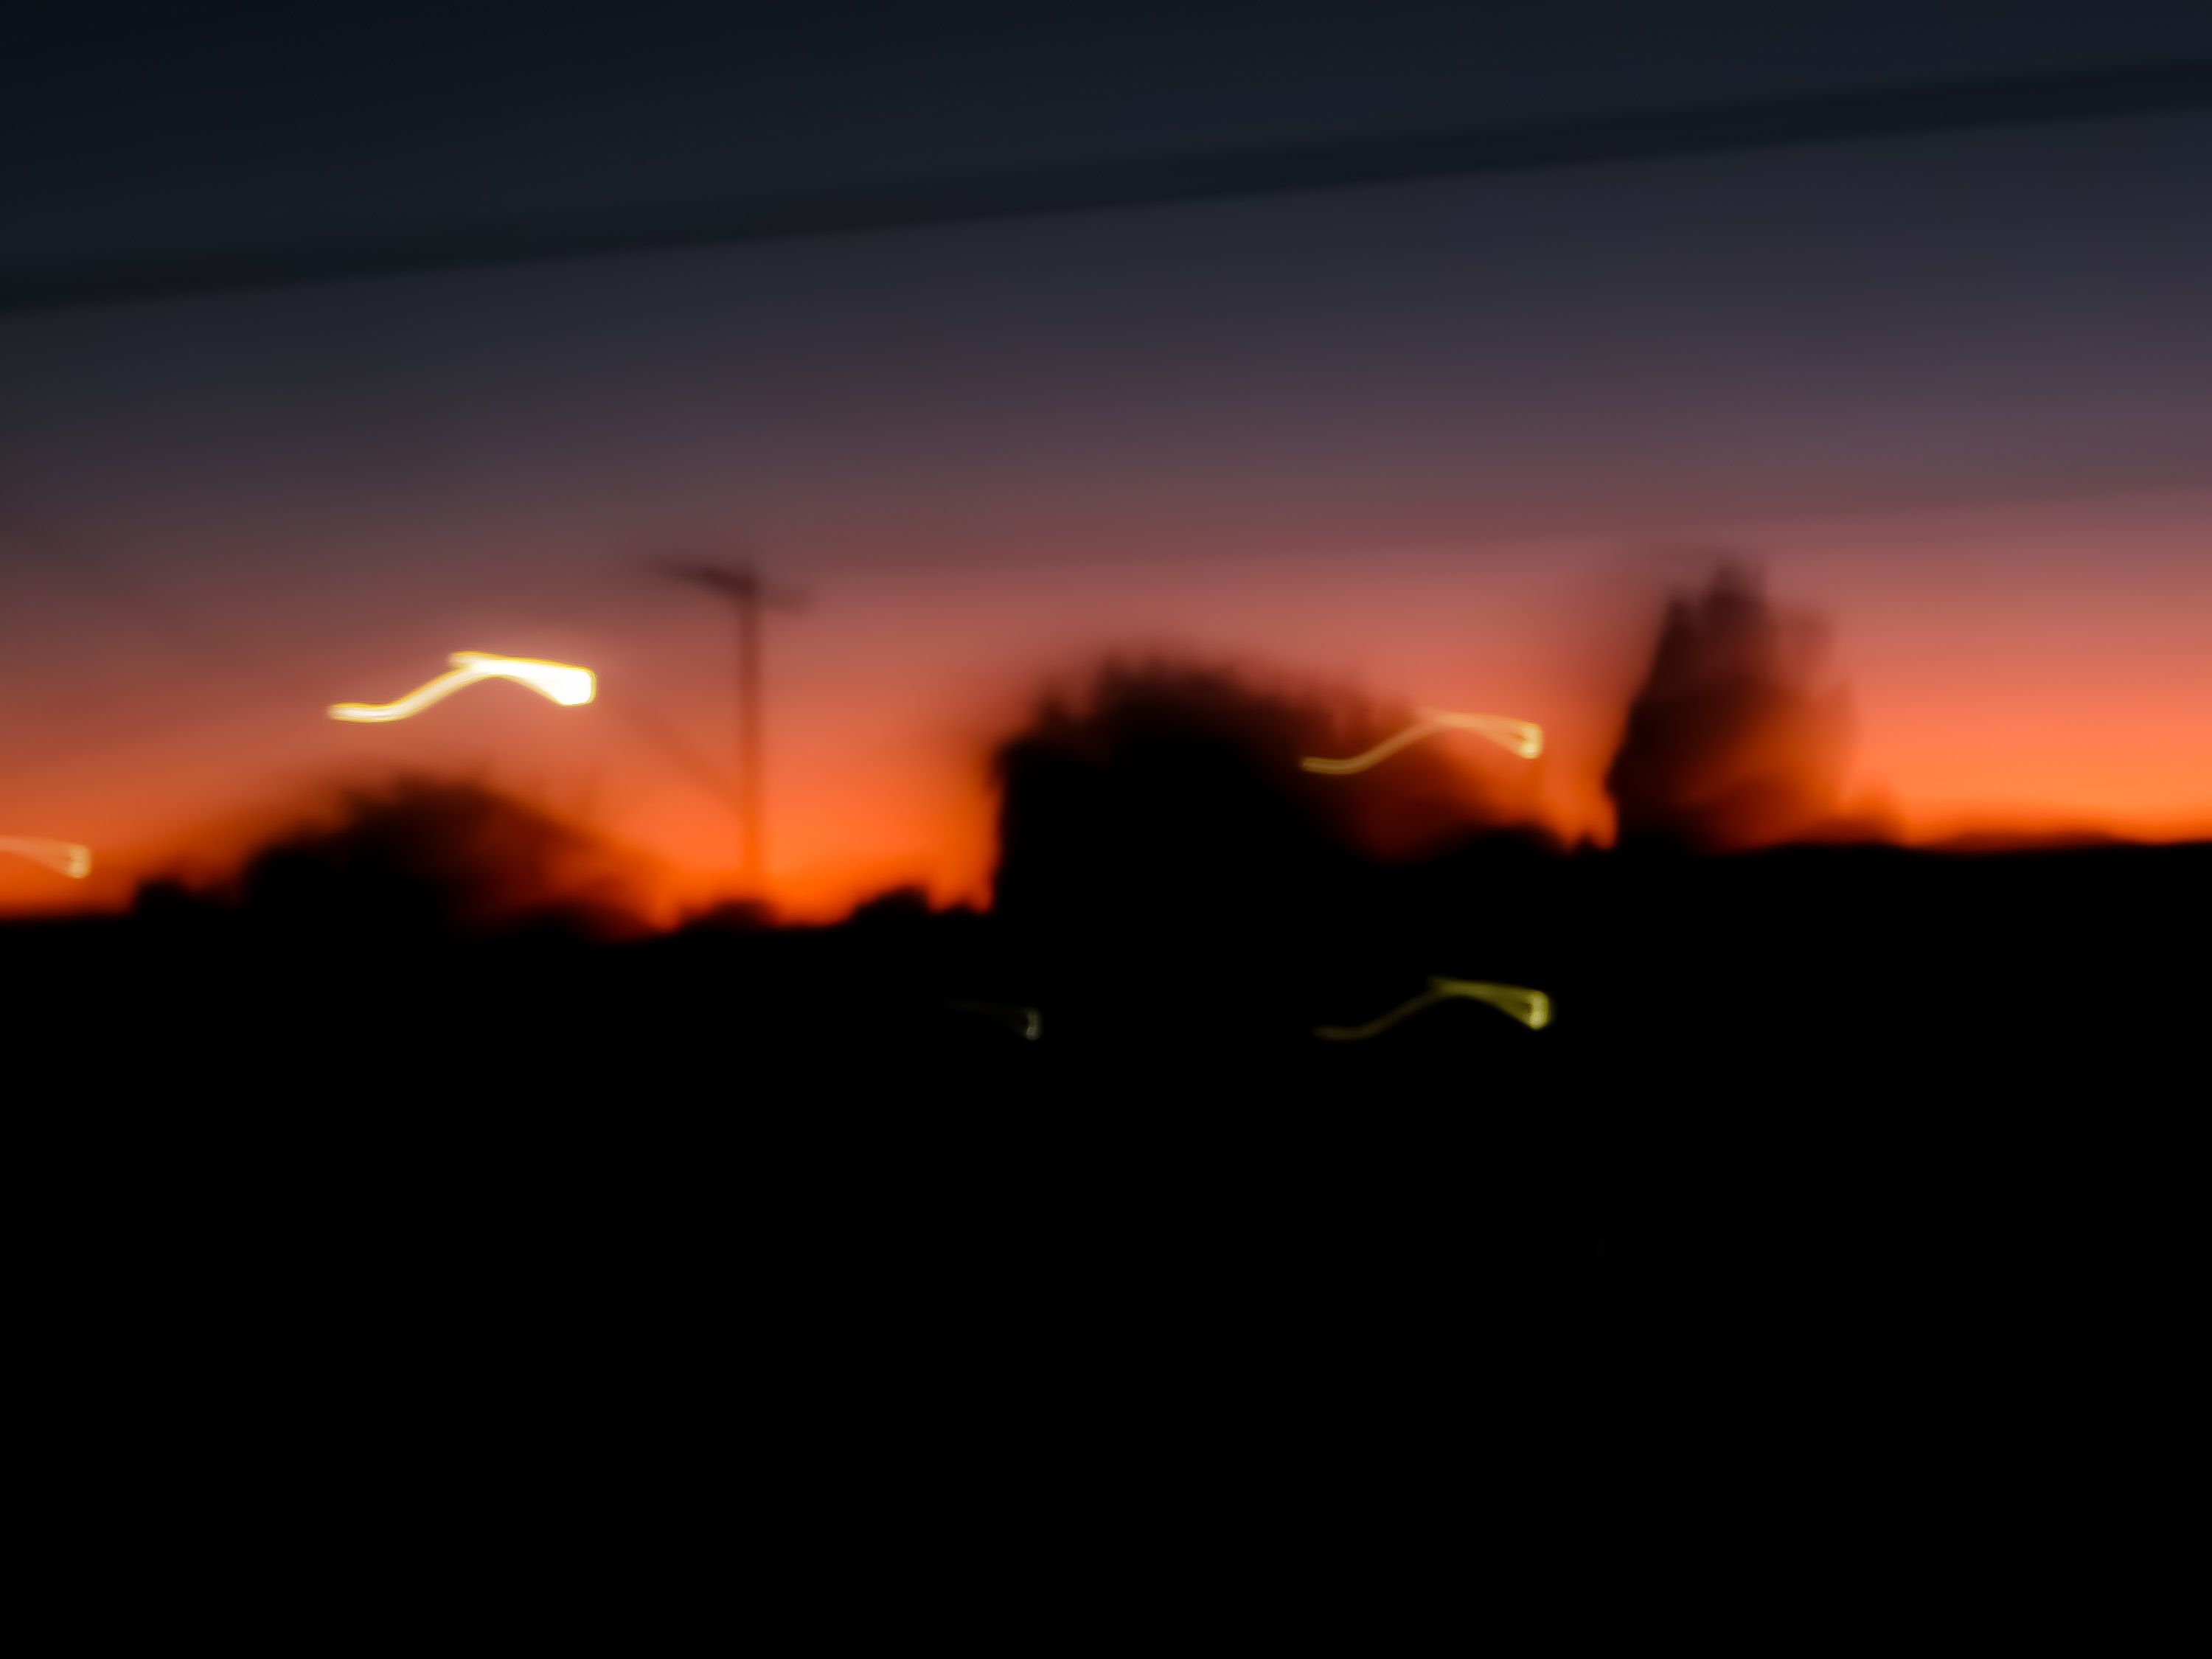 3000x2250 October sunsets   Blurry   Panning photography, Grunge ...